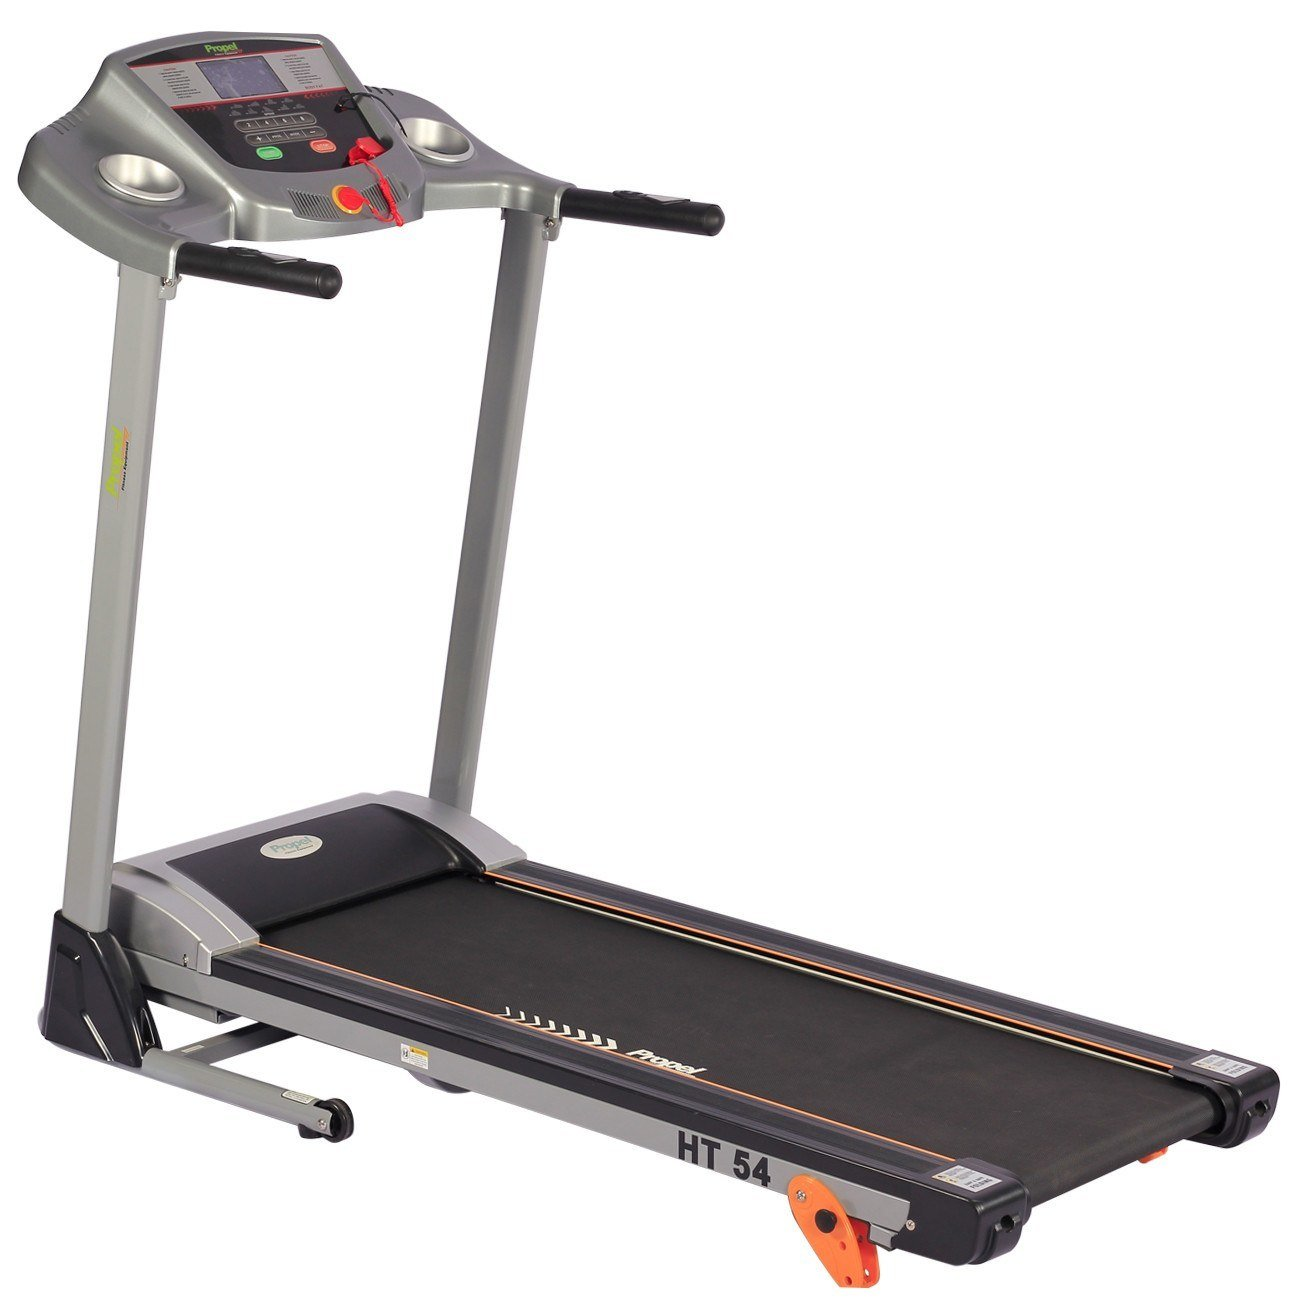 Choosing a Stationary Bike For Home Fitness